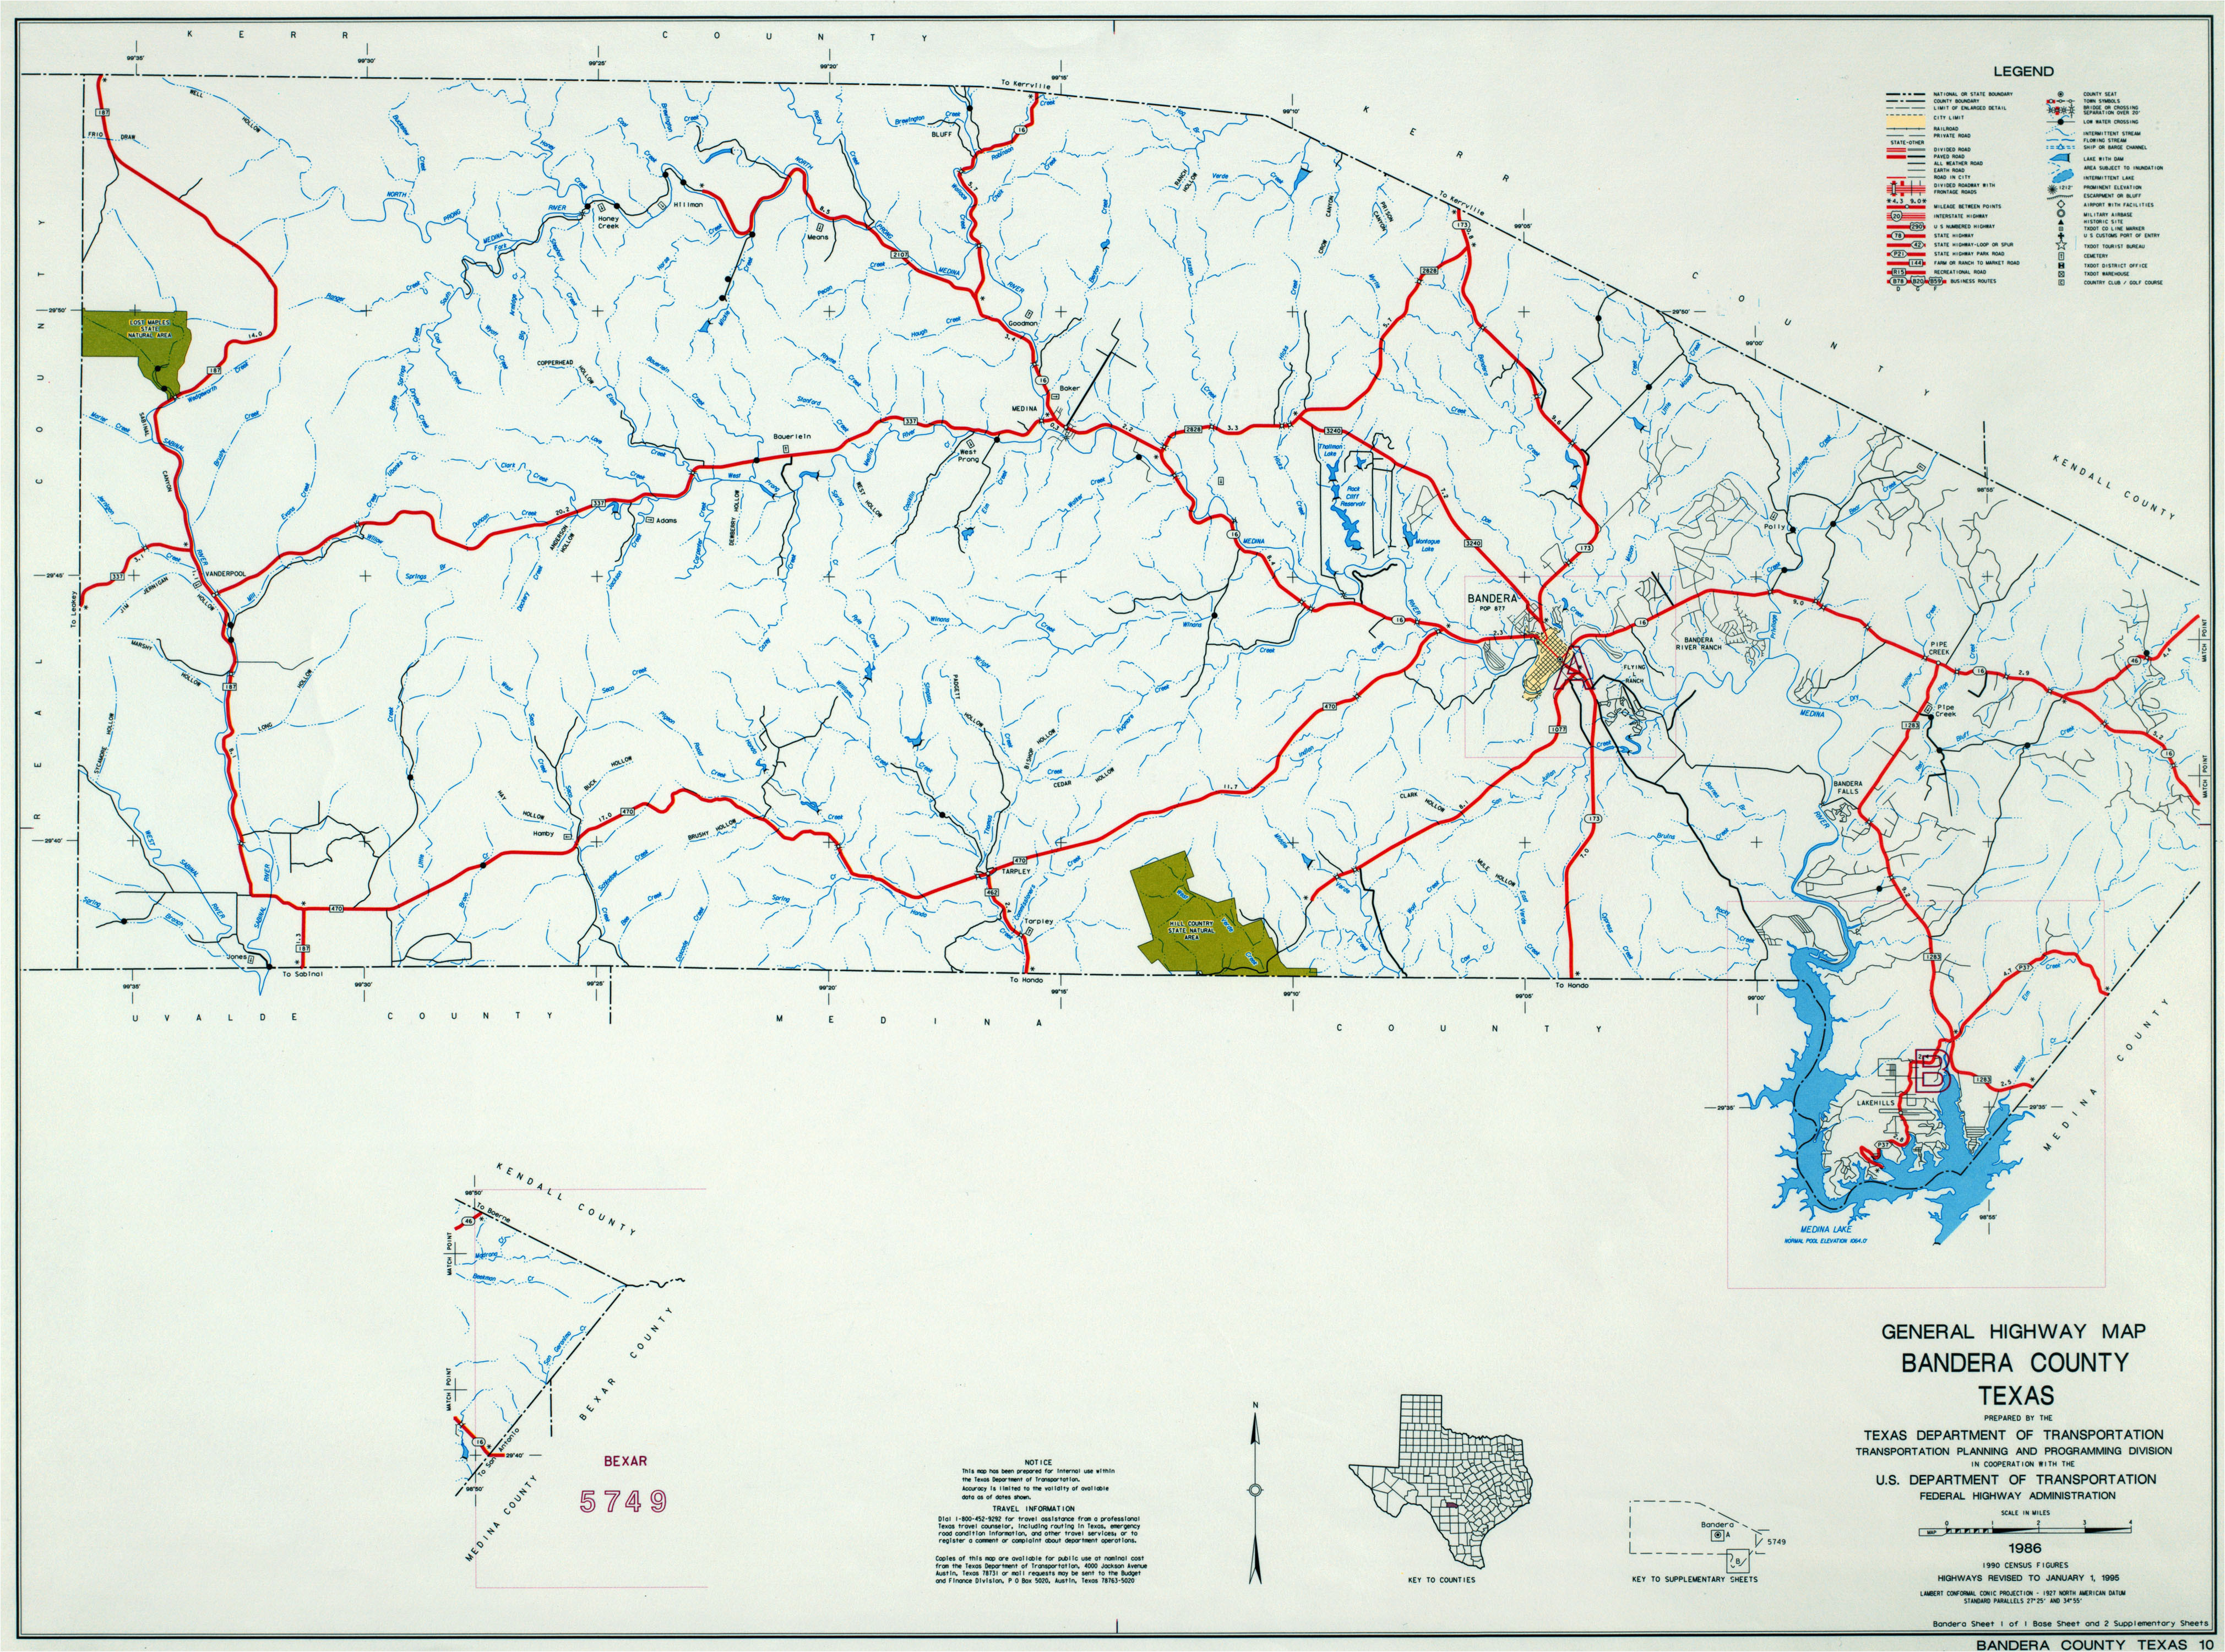 Texas City Map with County Lines Texas County Highway Maps Browse Perry Castaa Eda Map Collection